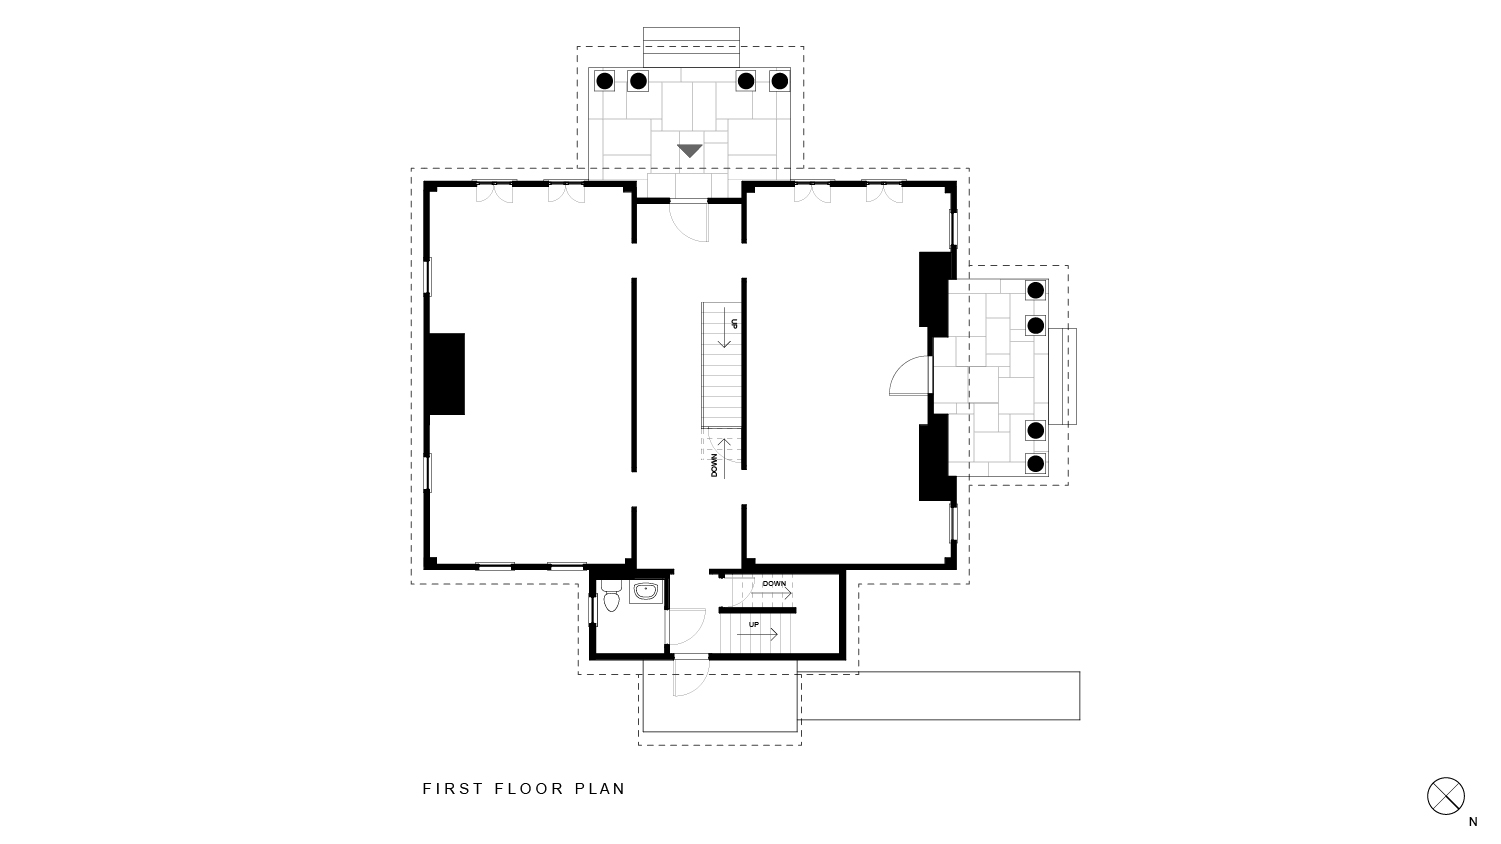 milford-community-house-first-floor-plan